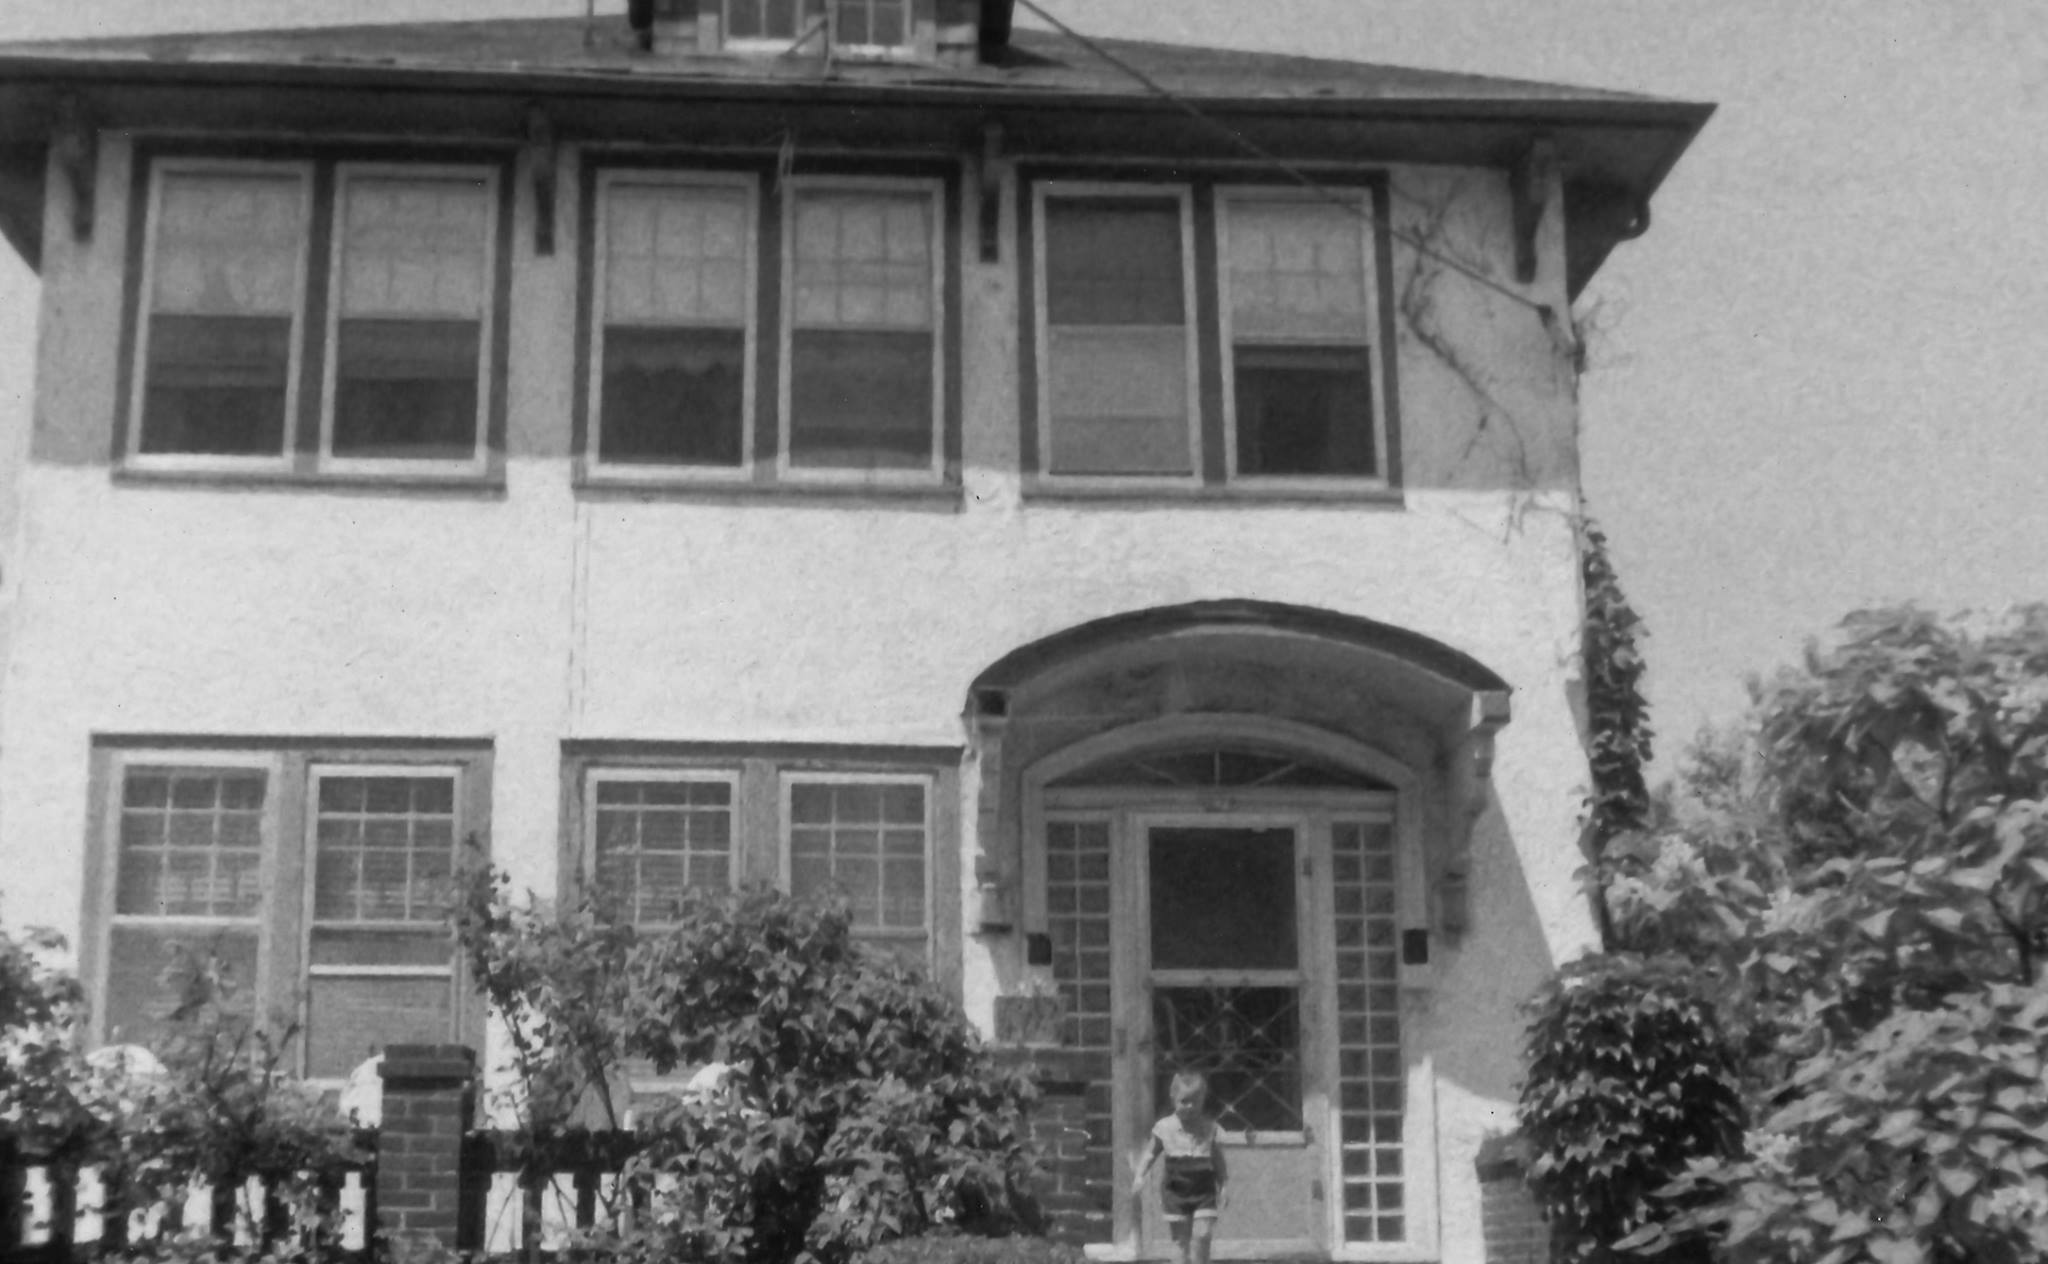 Me On The Front Steps of 279 Beach 15th Street - Apx 1959